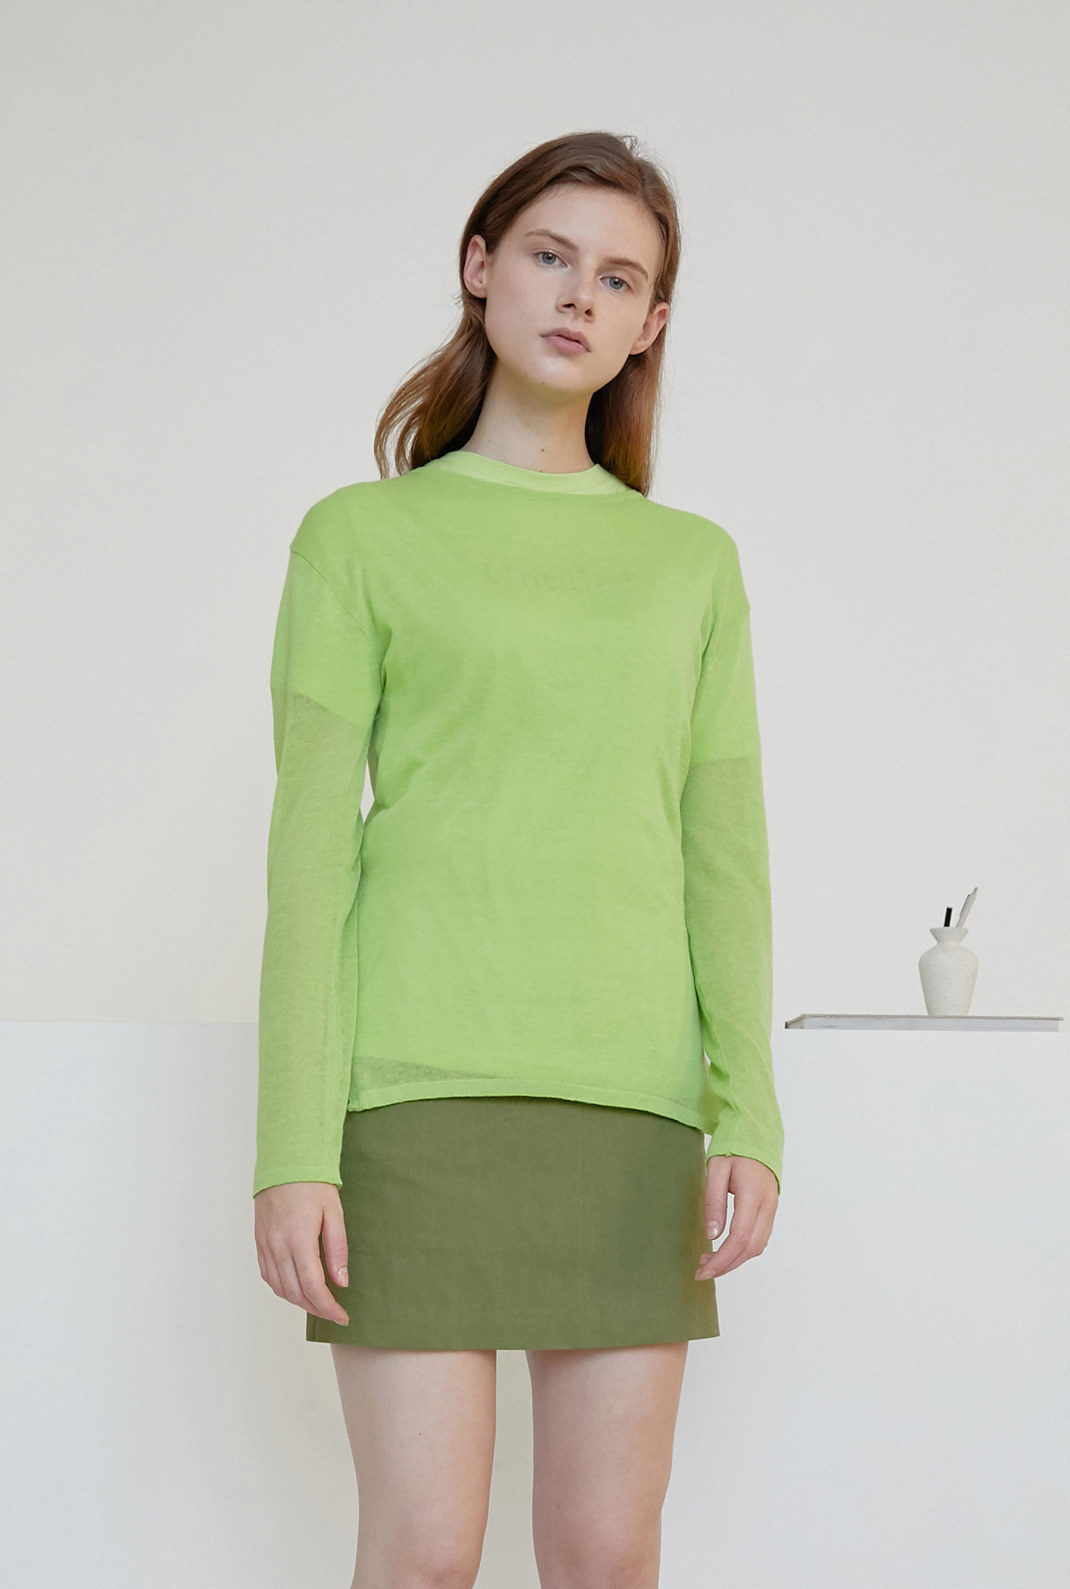 A SEE-THROUGH KNIT_YELLOWISH GREEN